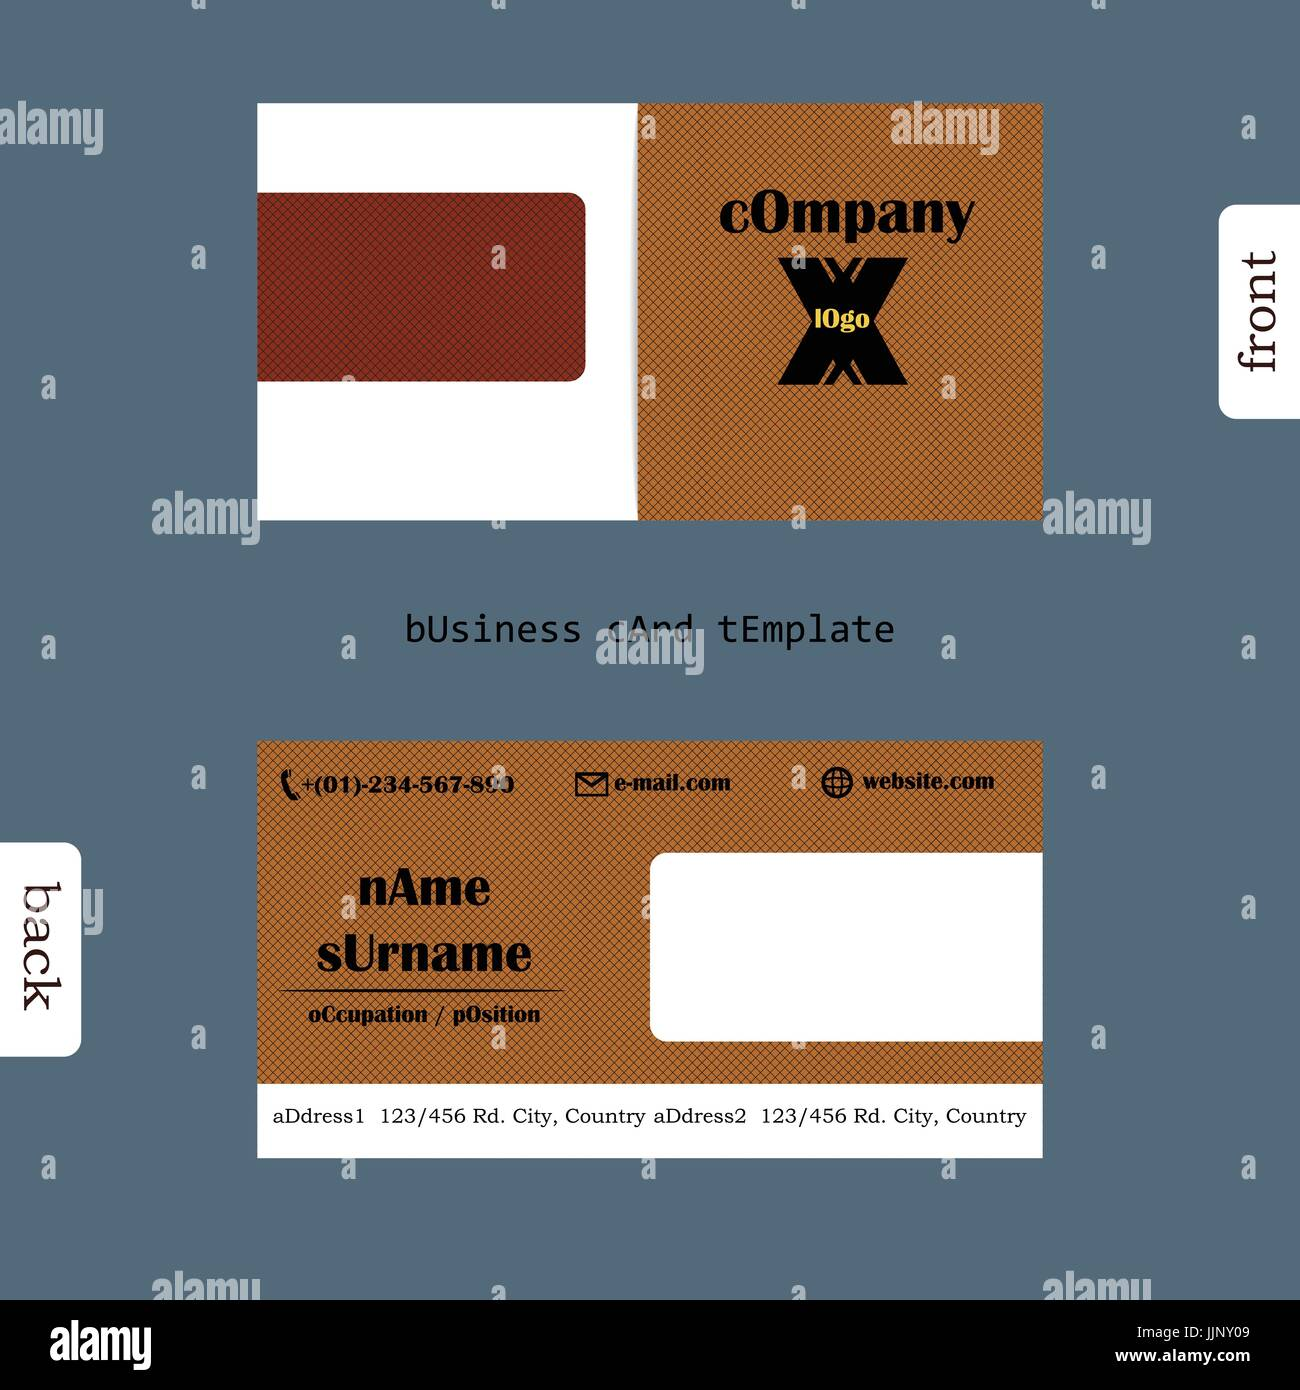 Design simple creative and clean business card template. Show front ...